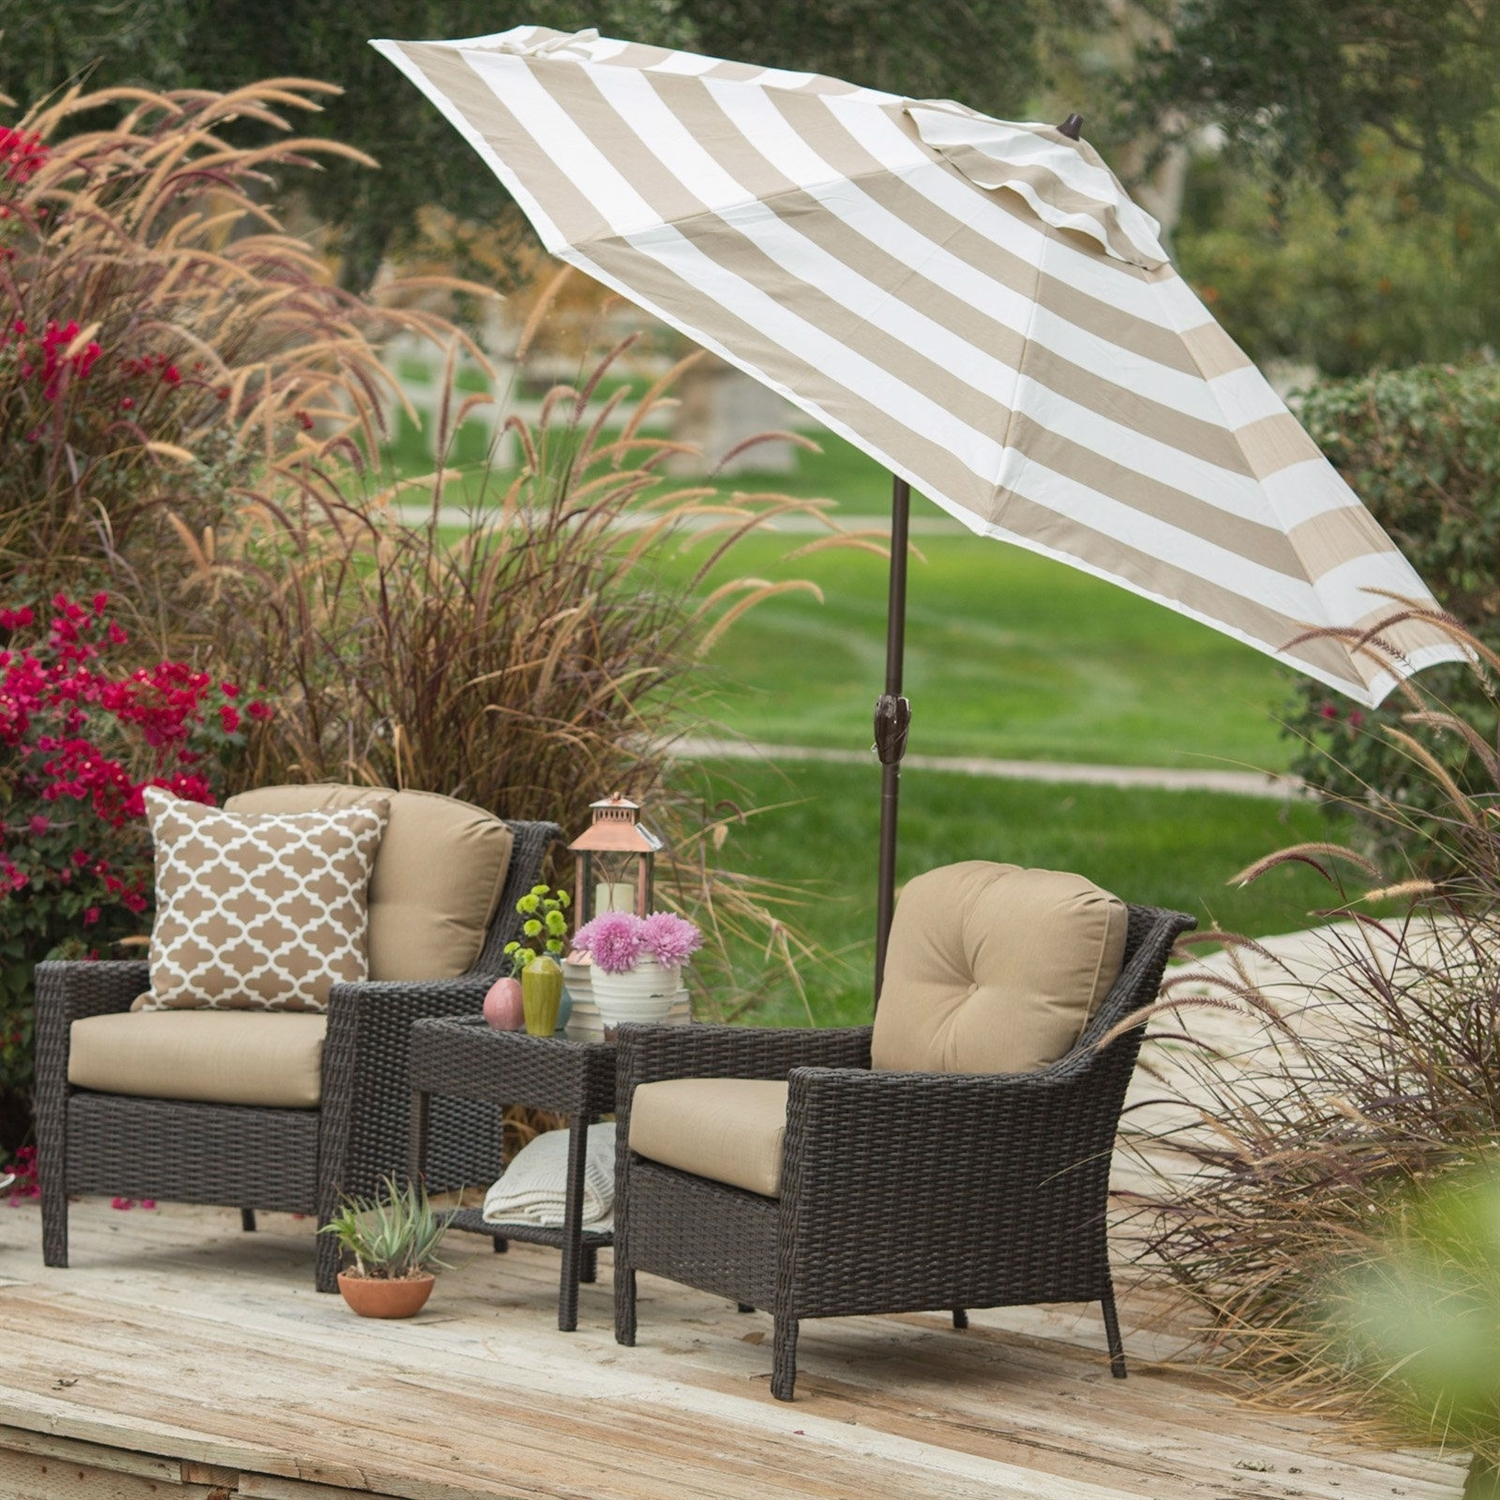 9 Ft Market Umbrella With Tilt And Crank With Beige And White Stripe Throughout Widely Used 9 Ft Patio Umbrellas (View 7 of 20)